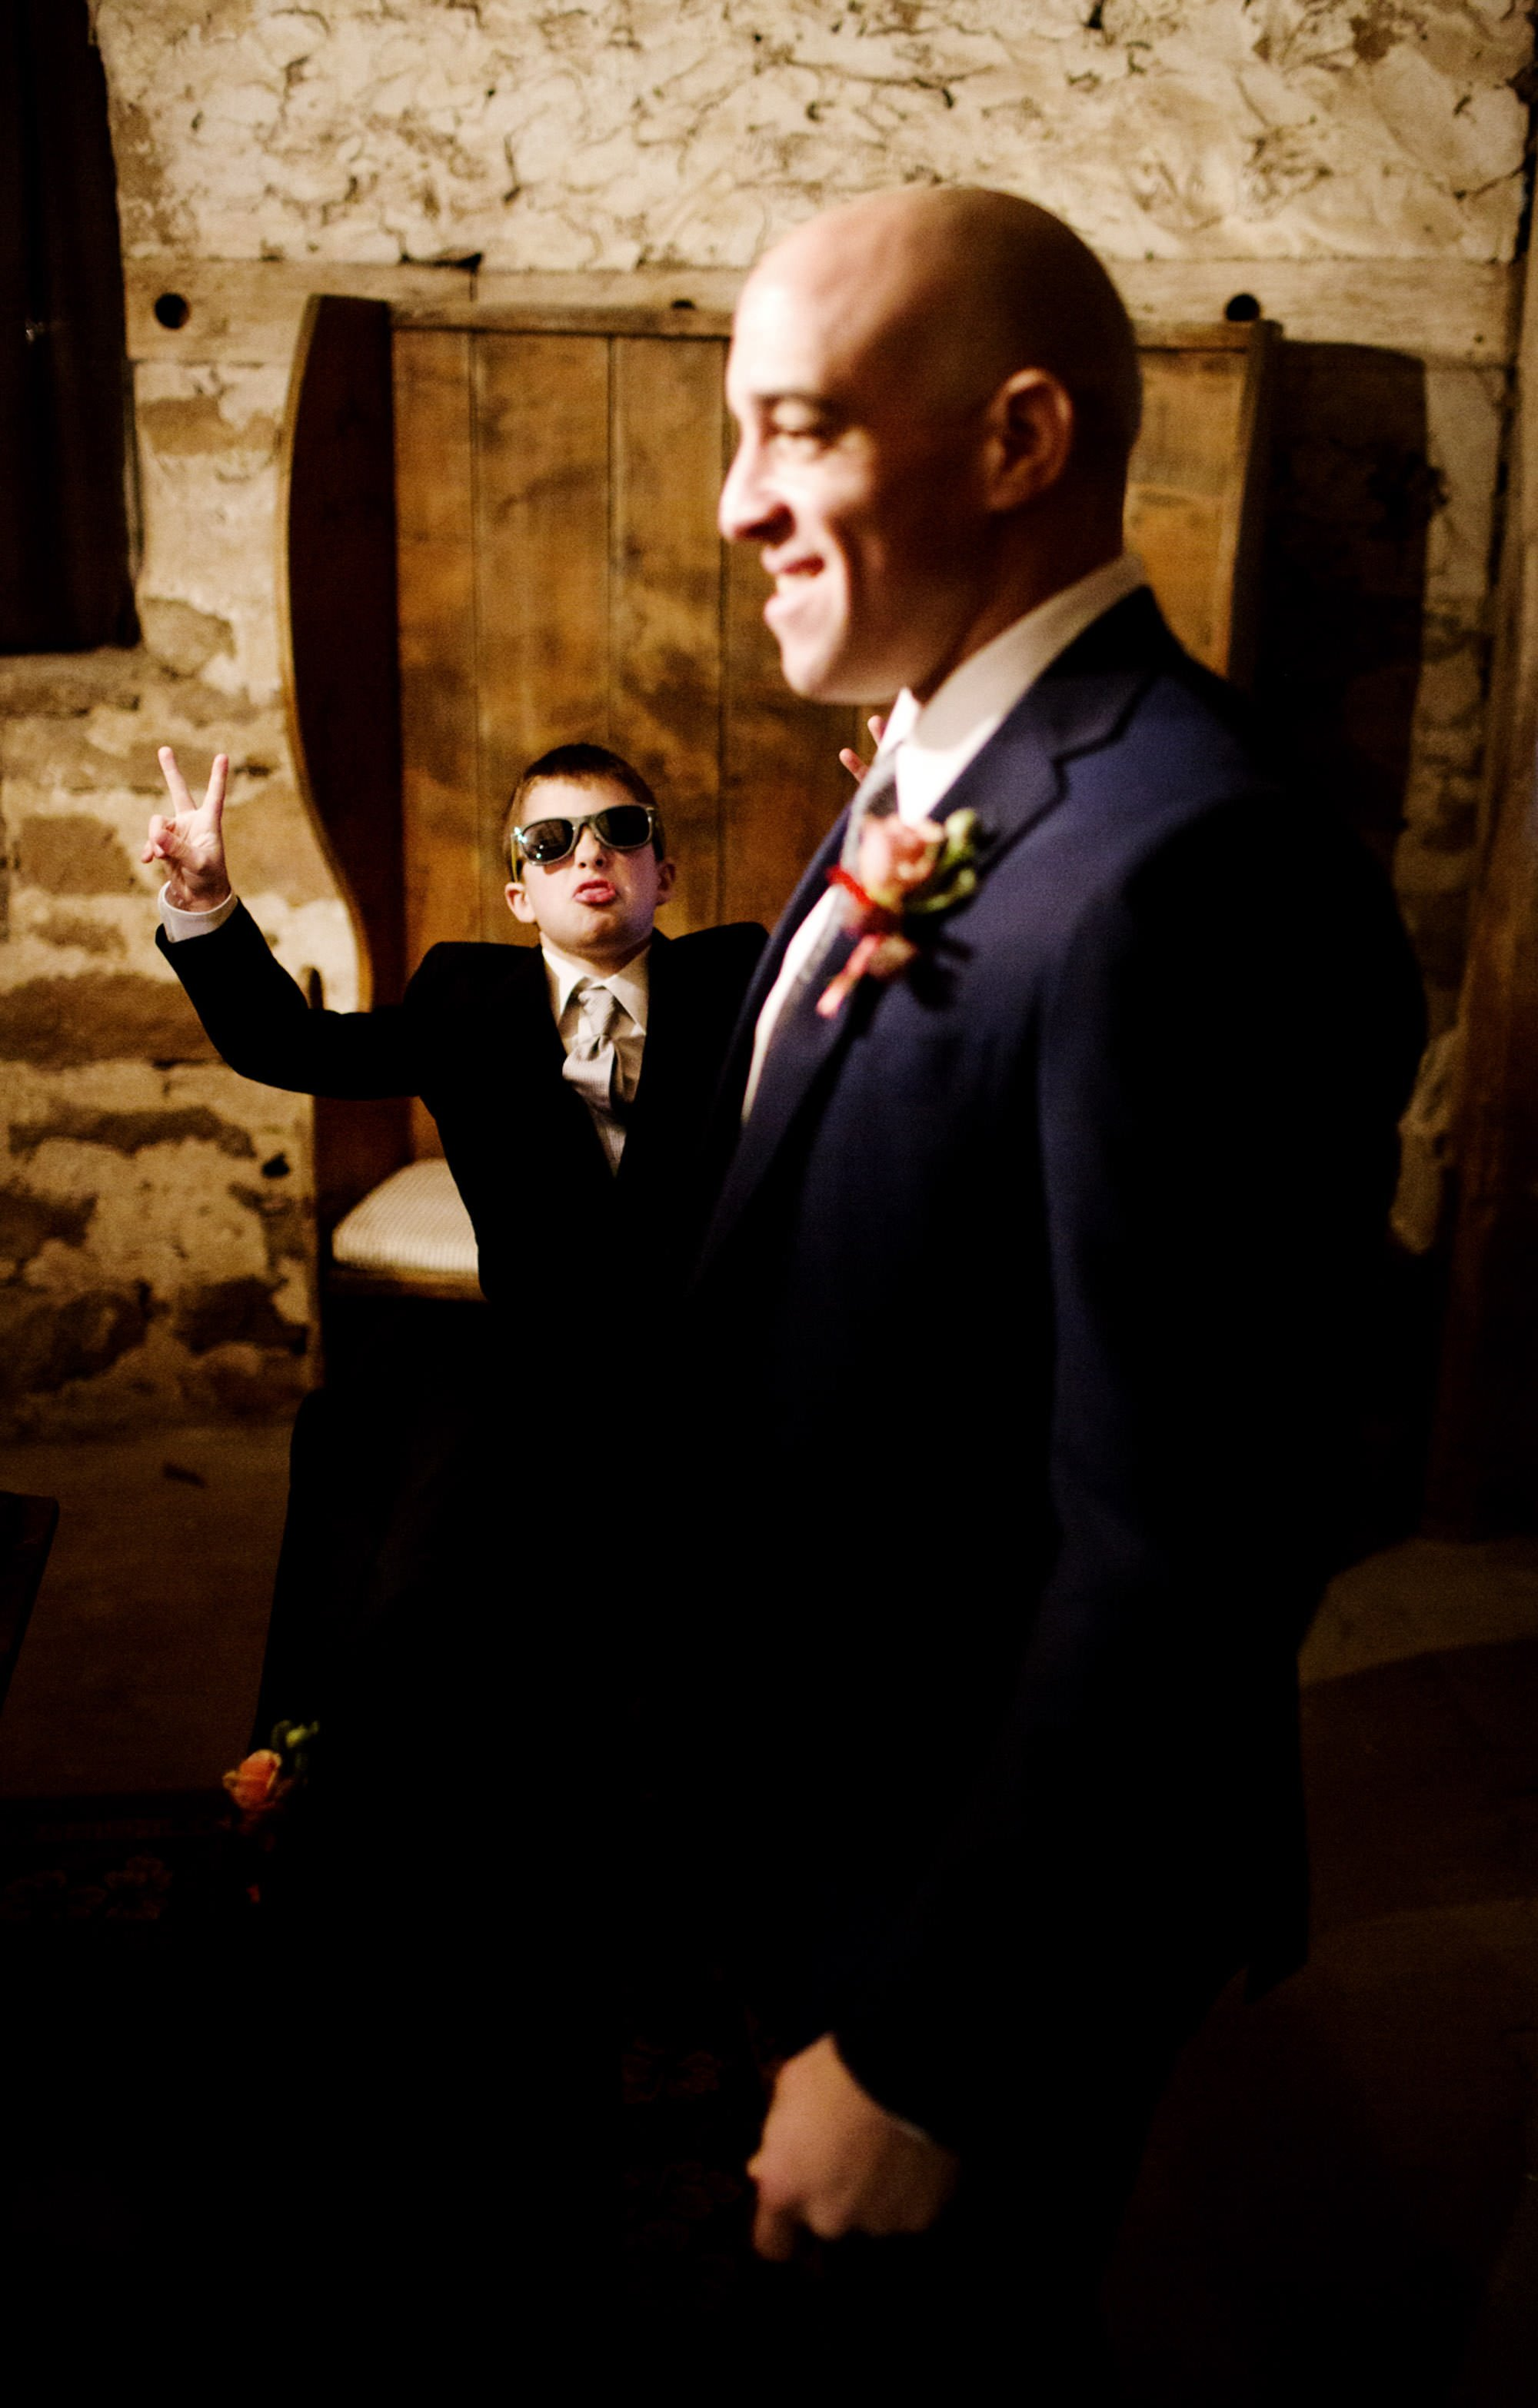 The ring bearer goofs off prior to the wedding ceremony.